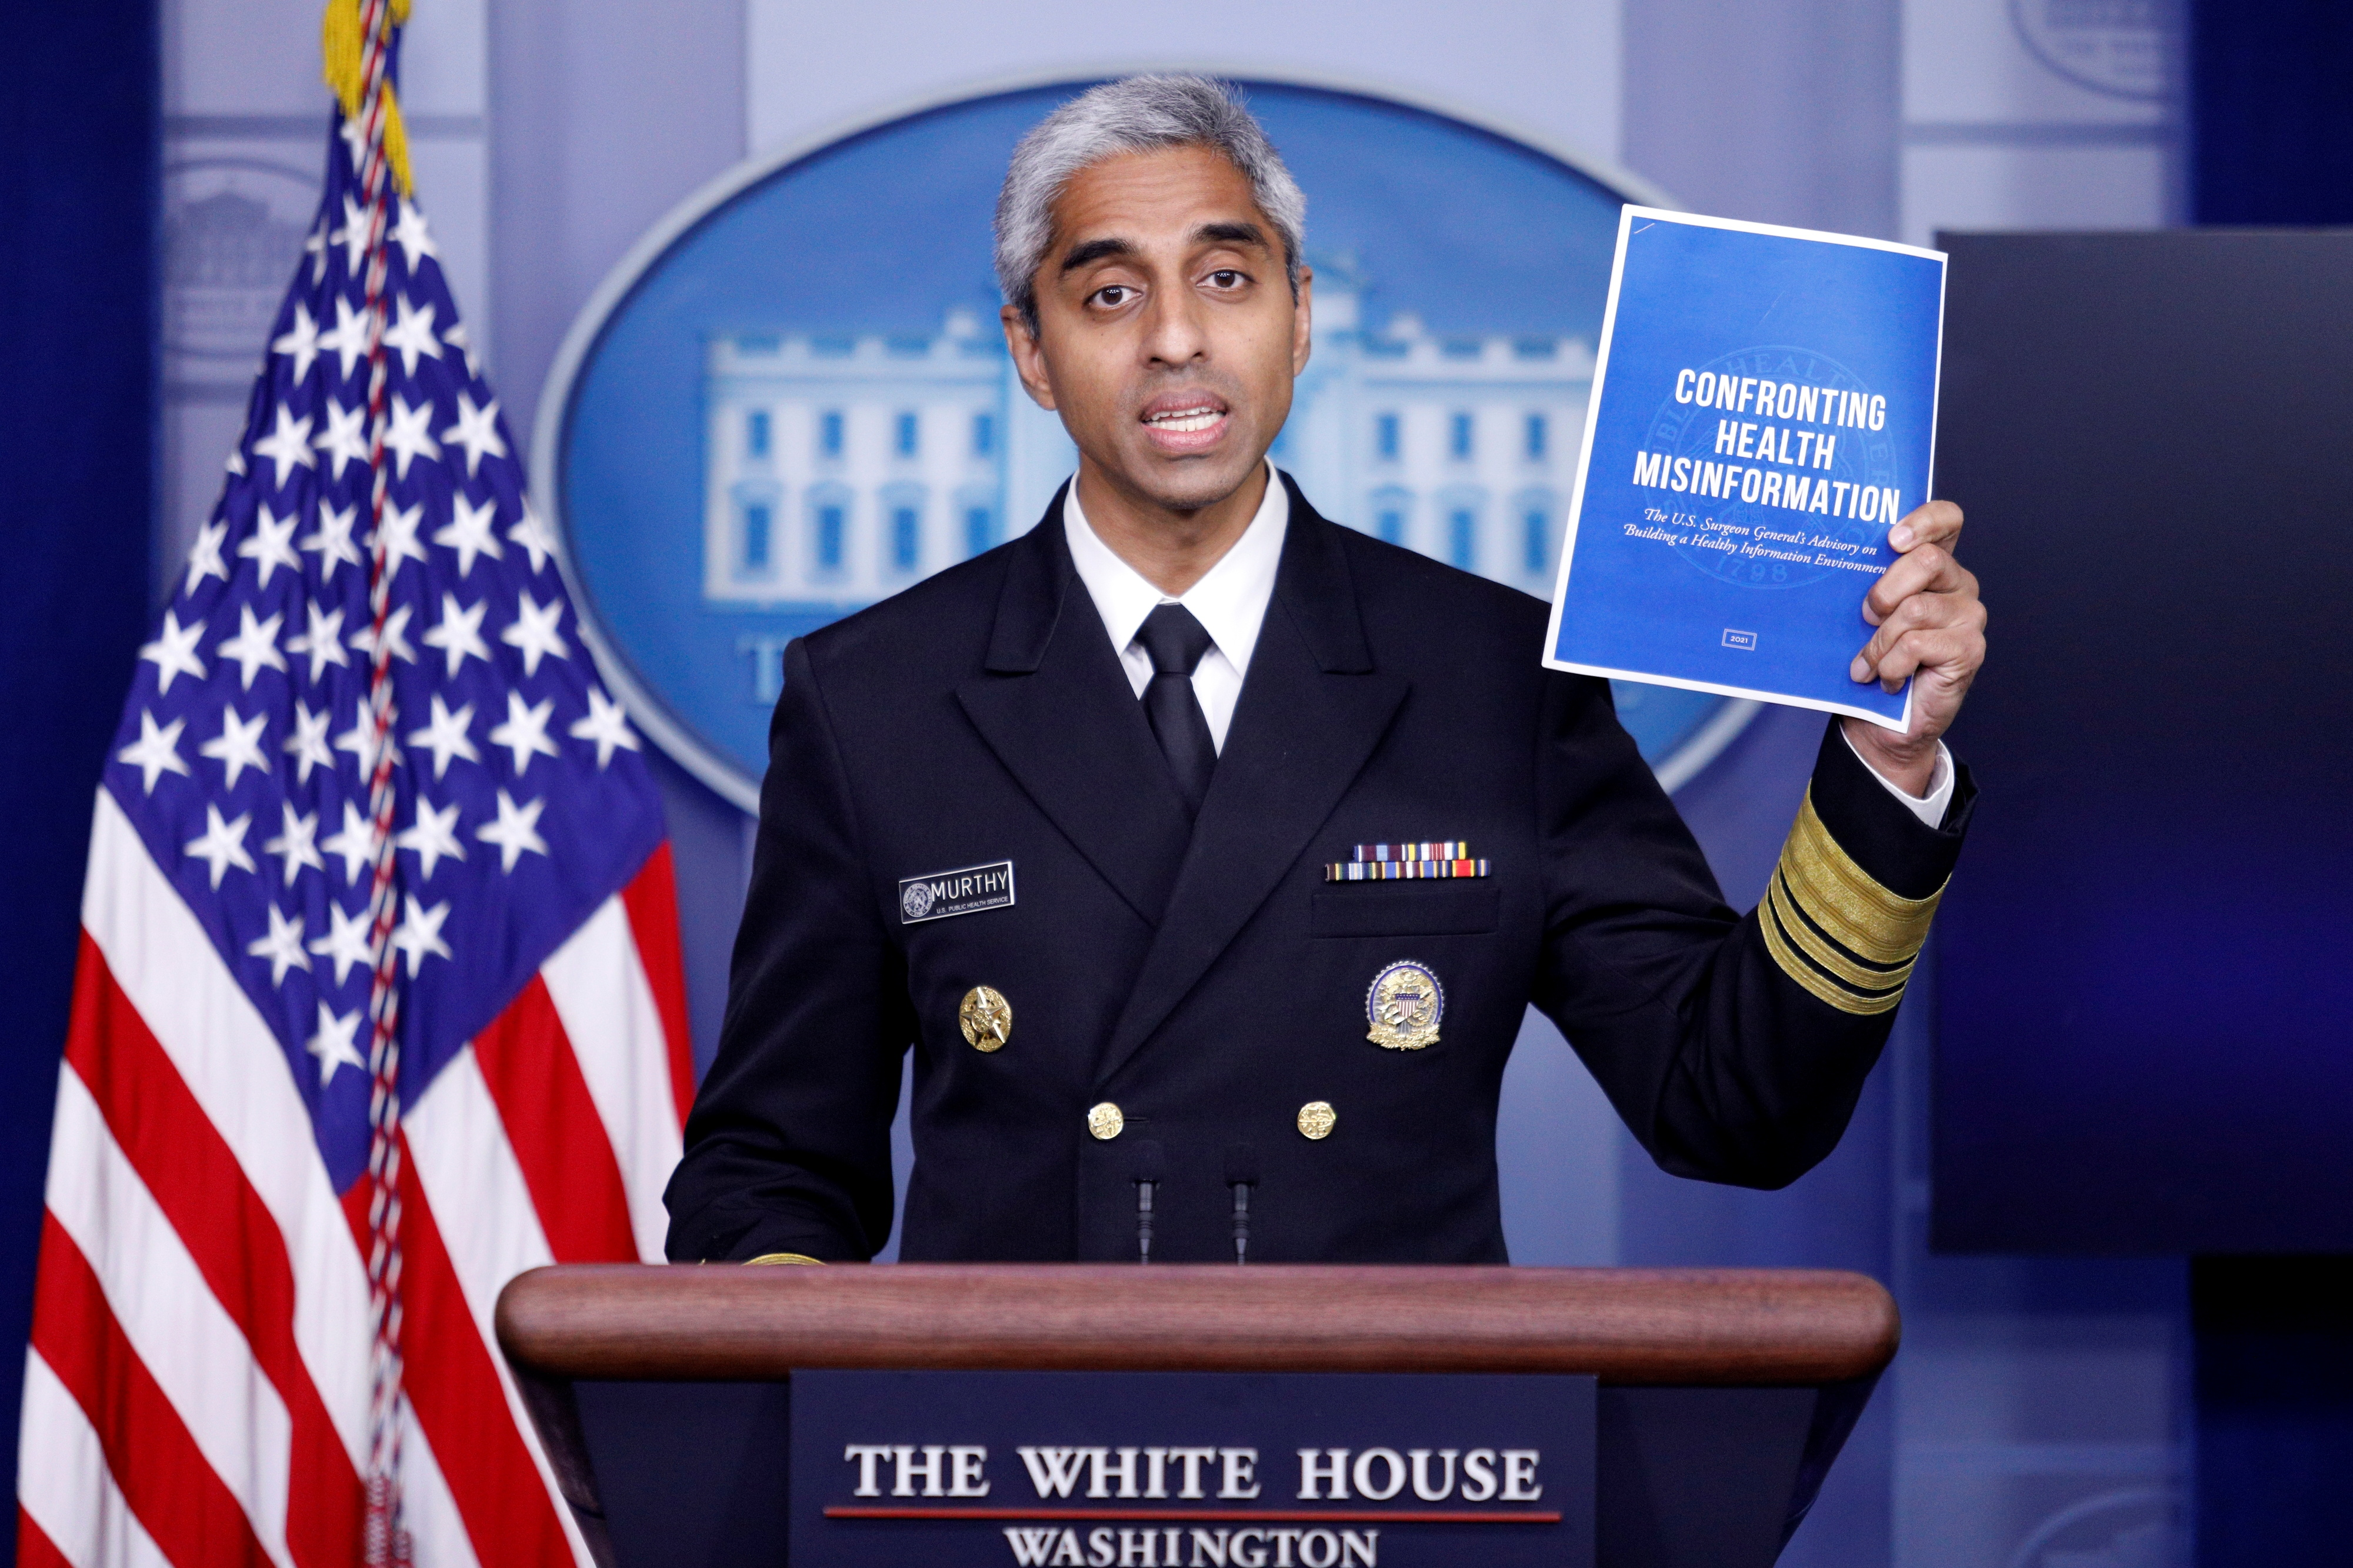 United States Surgeon General Vivek Murthy delivers remarks during a news conference with White House Press Secretary Jen Psaki at the White House in Washington, U.S., July15, 2021. REUTERS/Tom Brenner